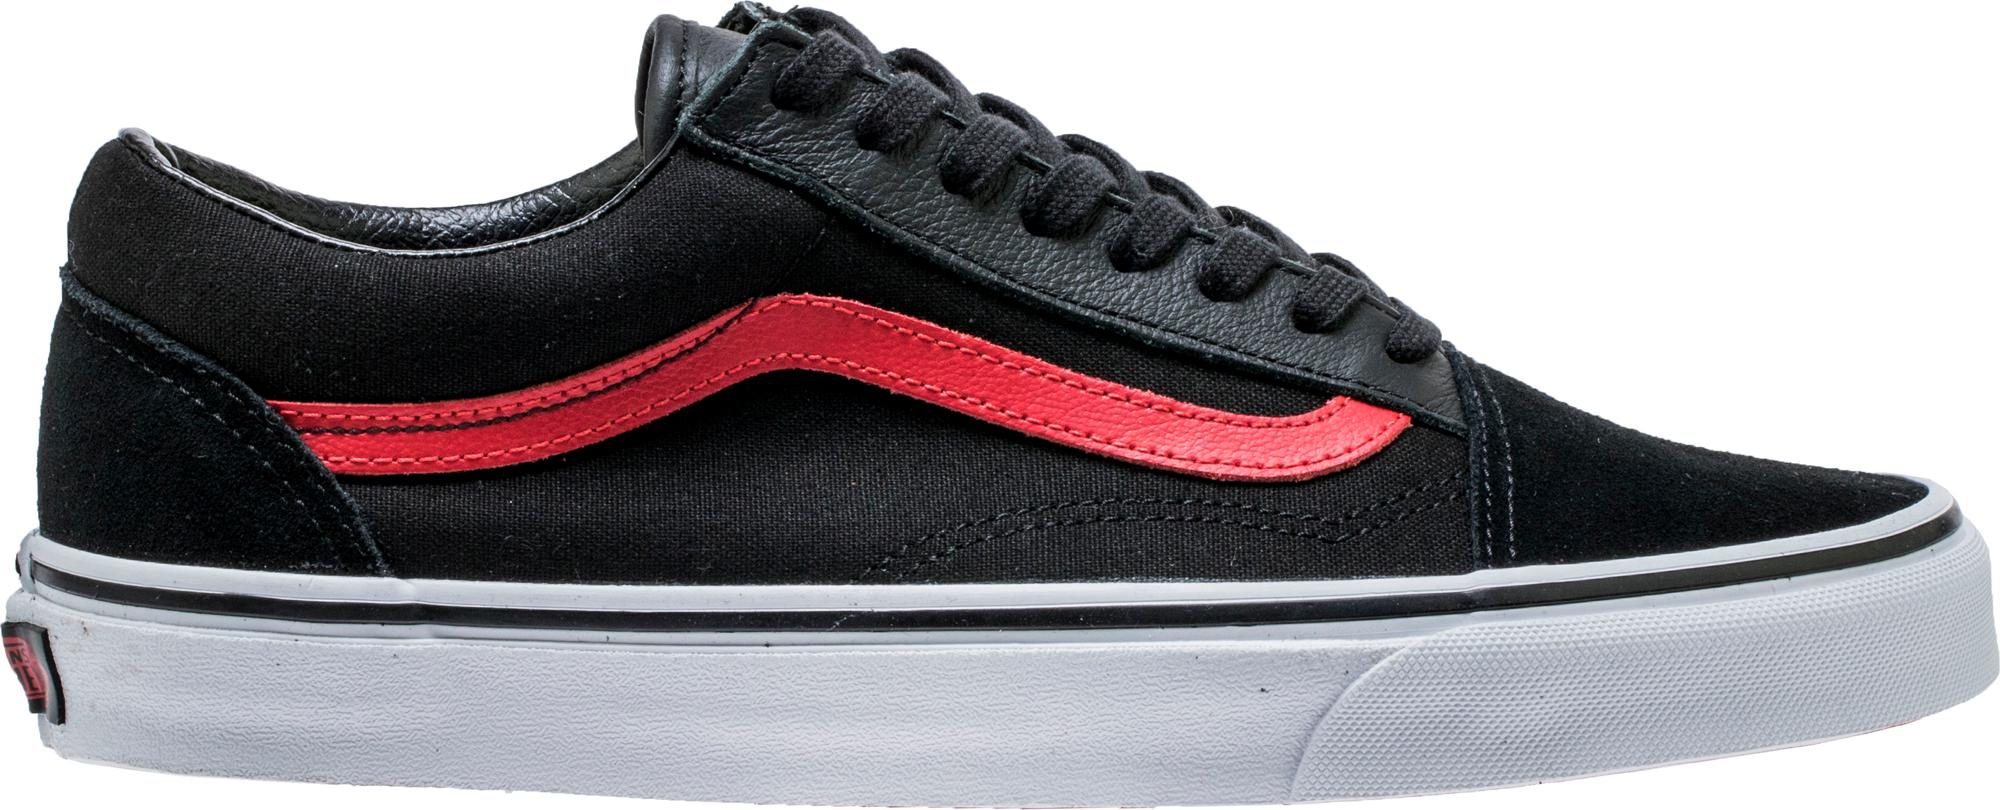 2d8a4e85d1 Lyst - Vans Old Skool Shoe Palace 25th Anniversary in Red for Men